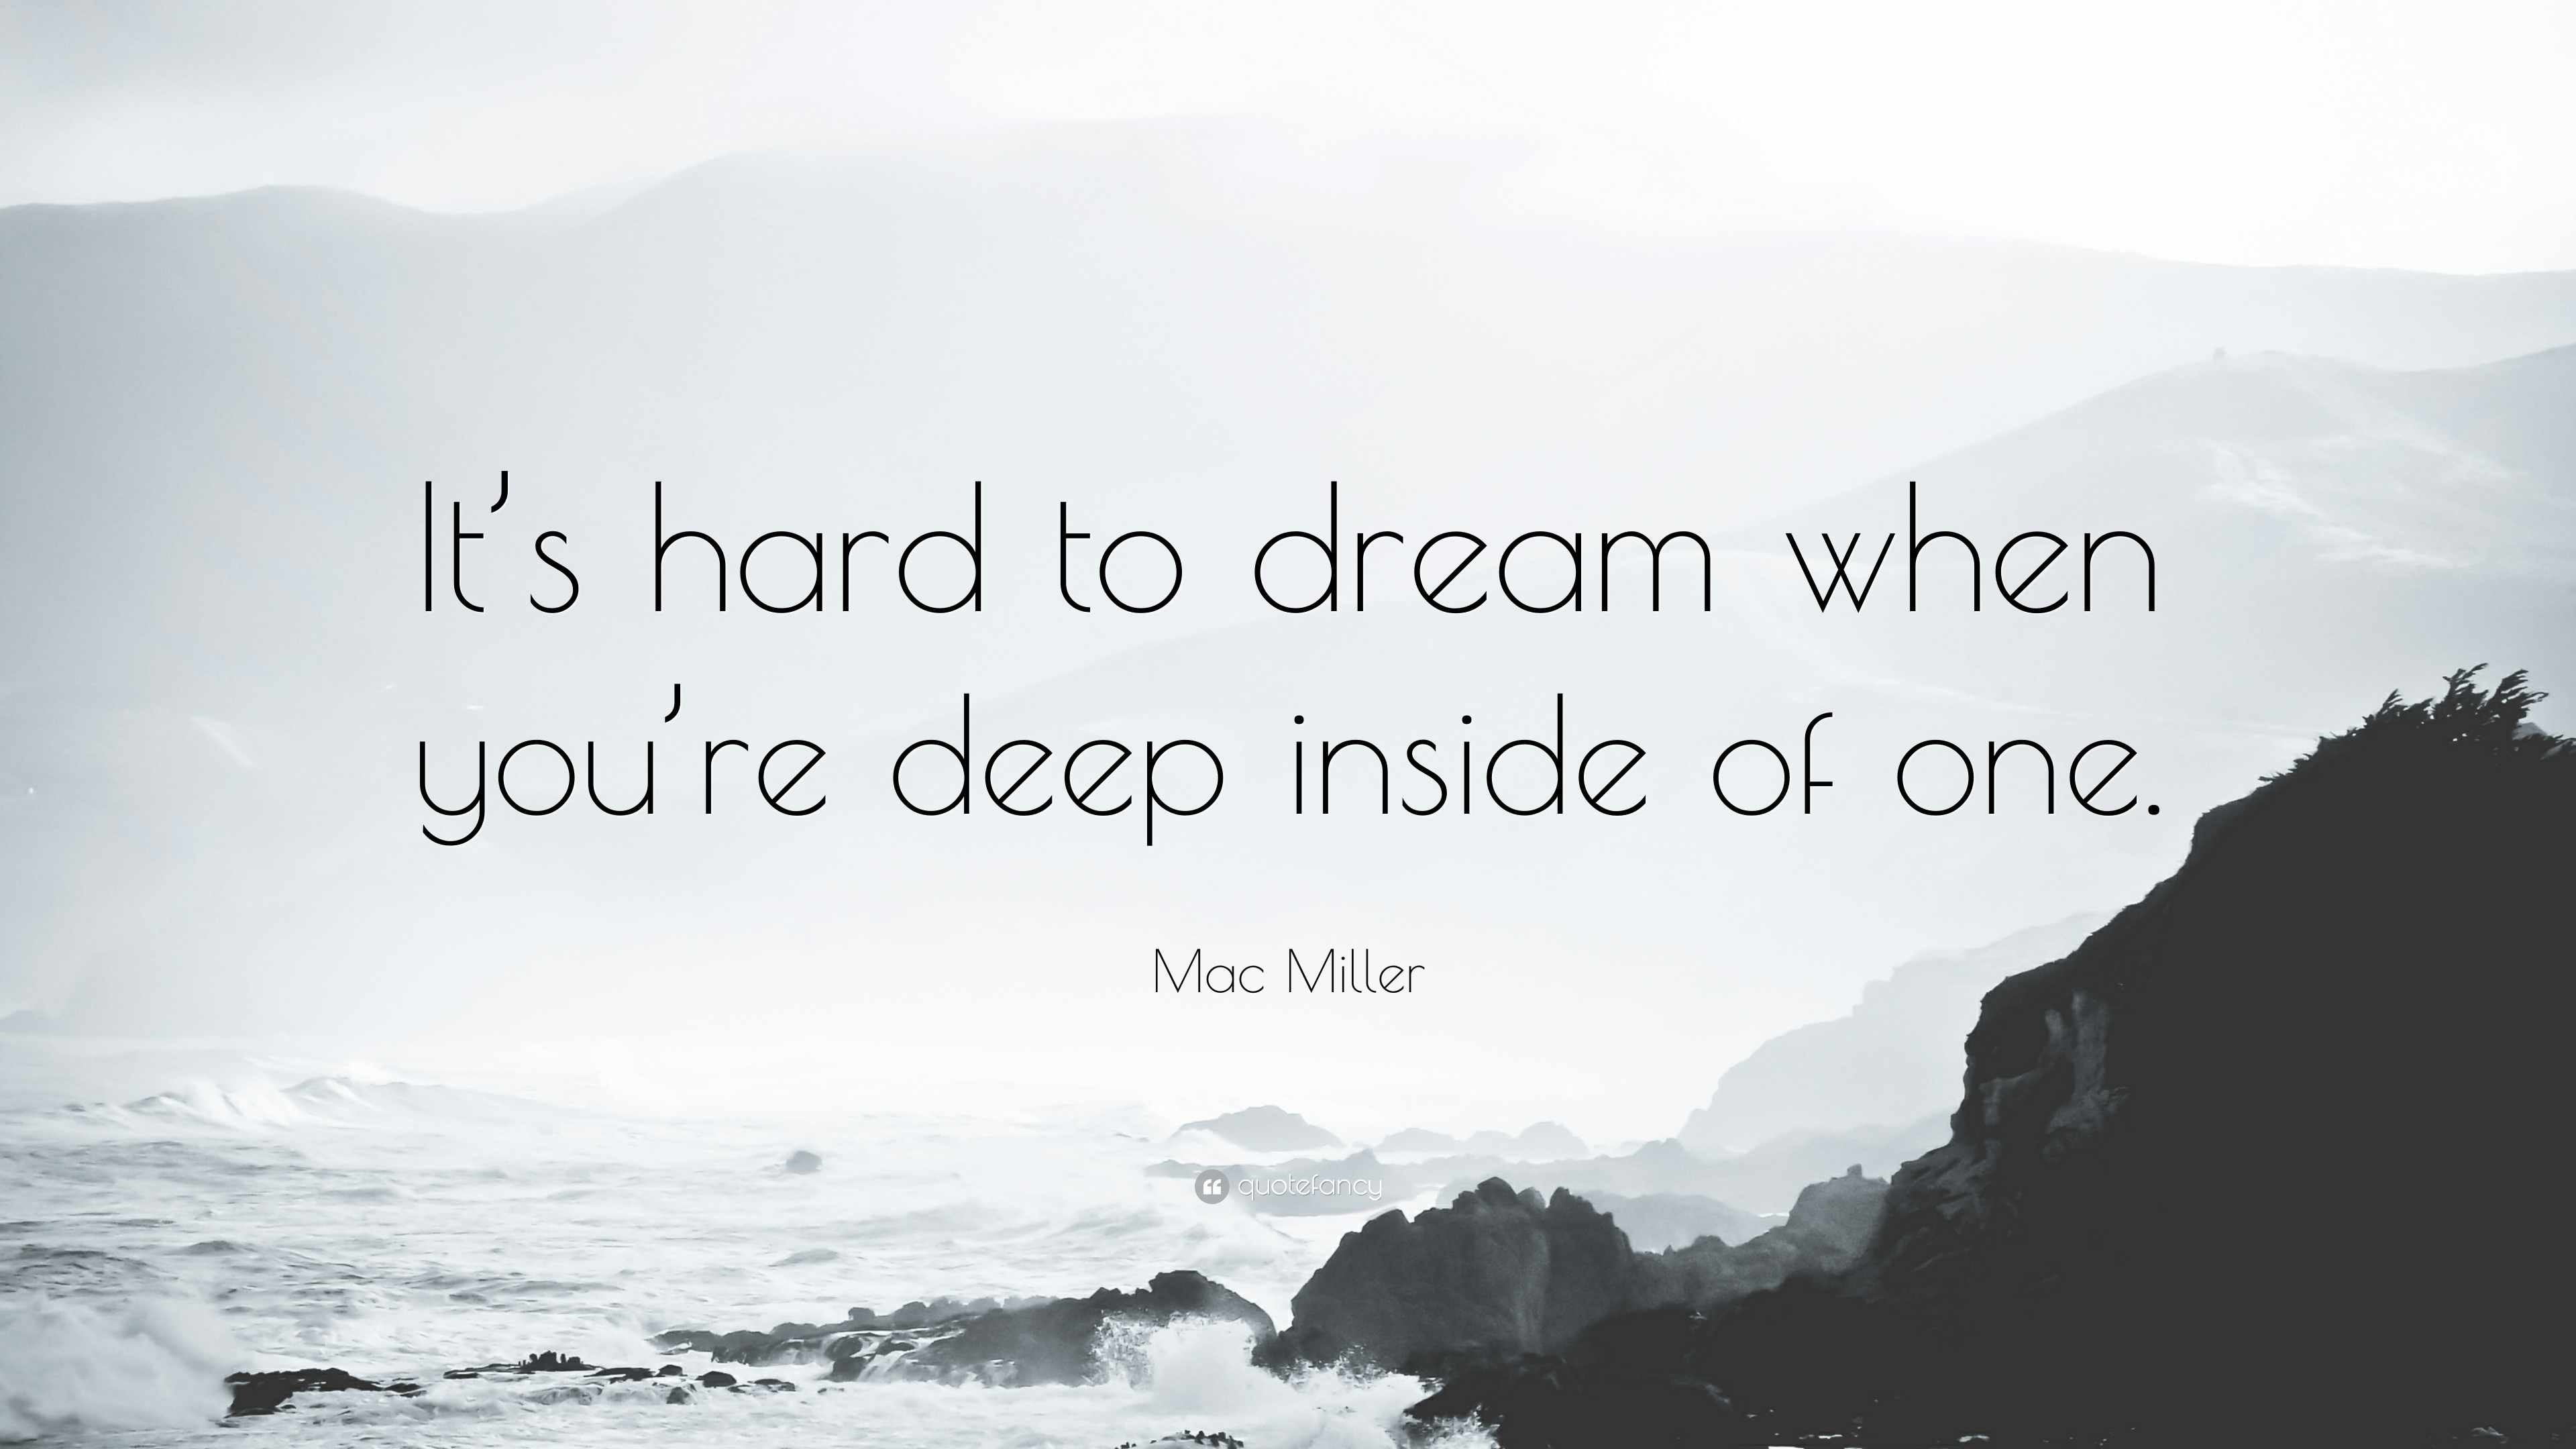 Beautiful Wallpaper Mac Quotes - 3483916-Mac-Miller-Quote-It-s-hard-to-dream-when-you-re-deep-inside-of-one  2018_55662.jpg